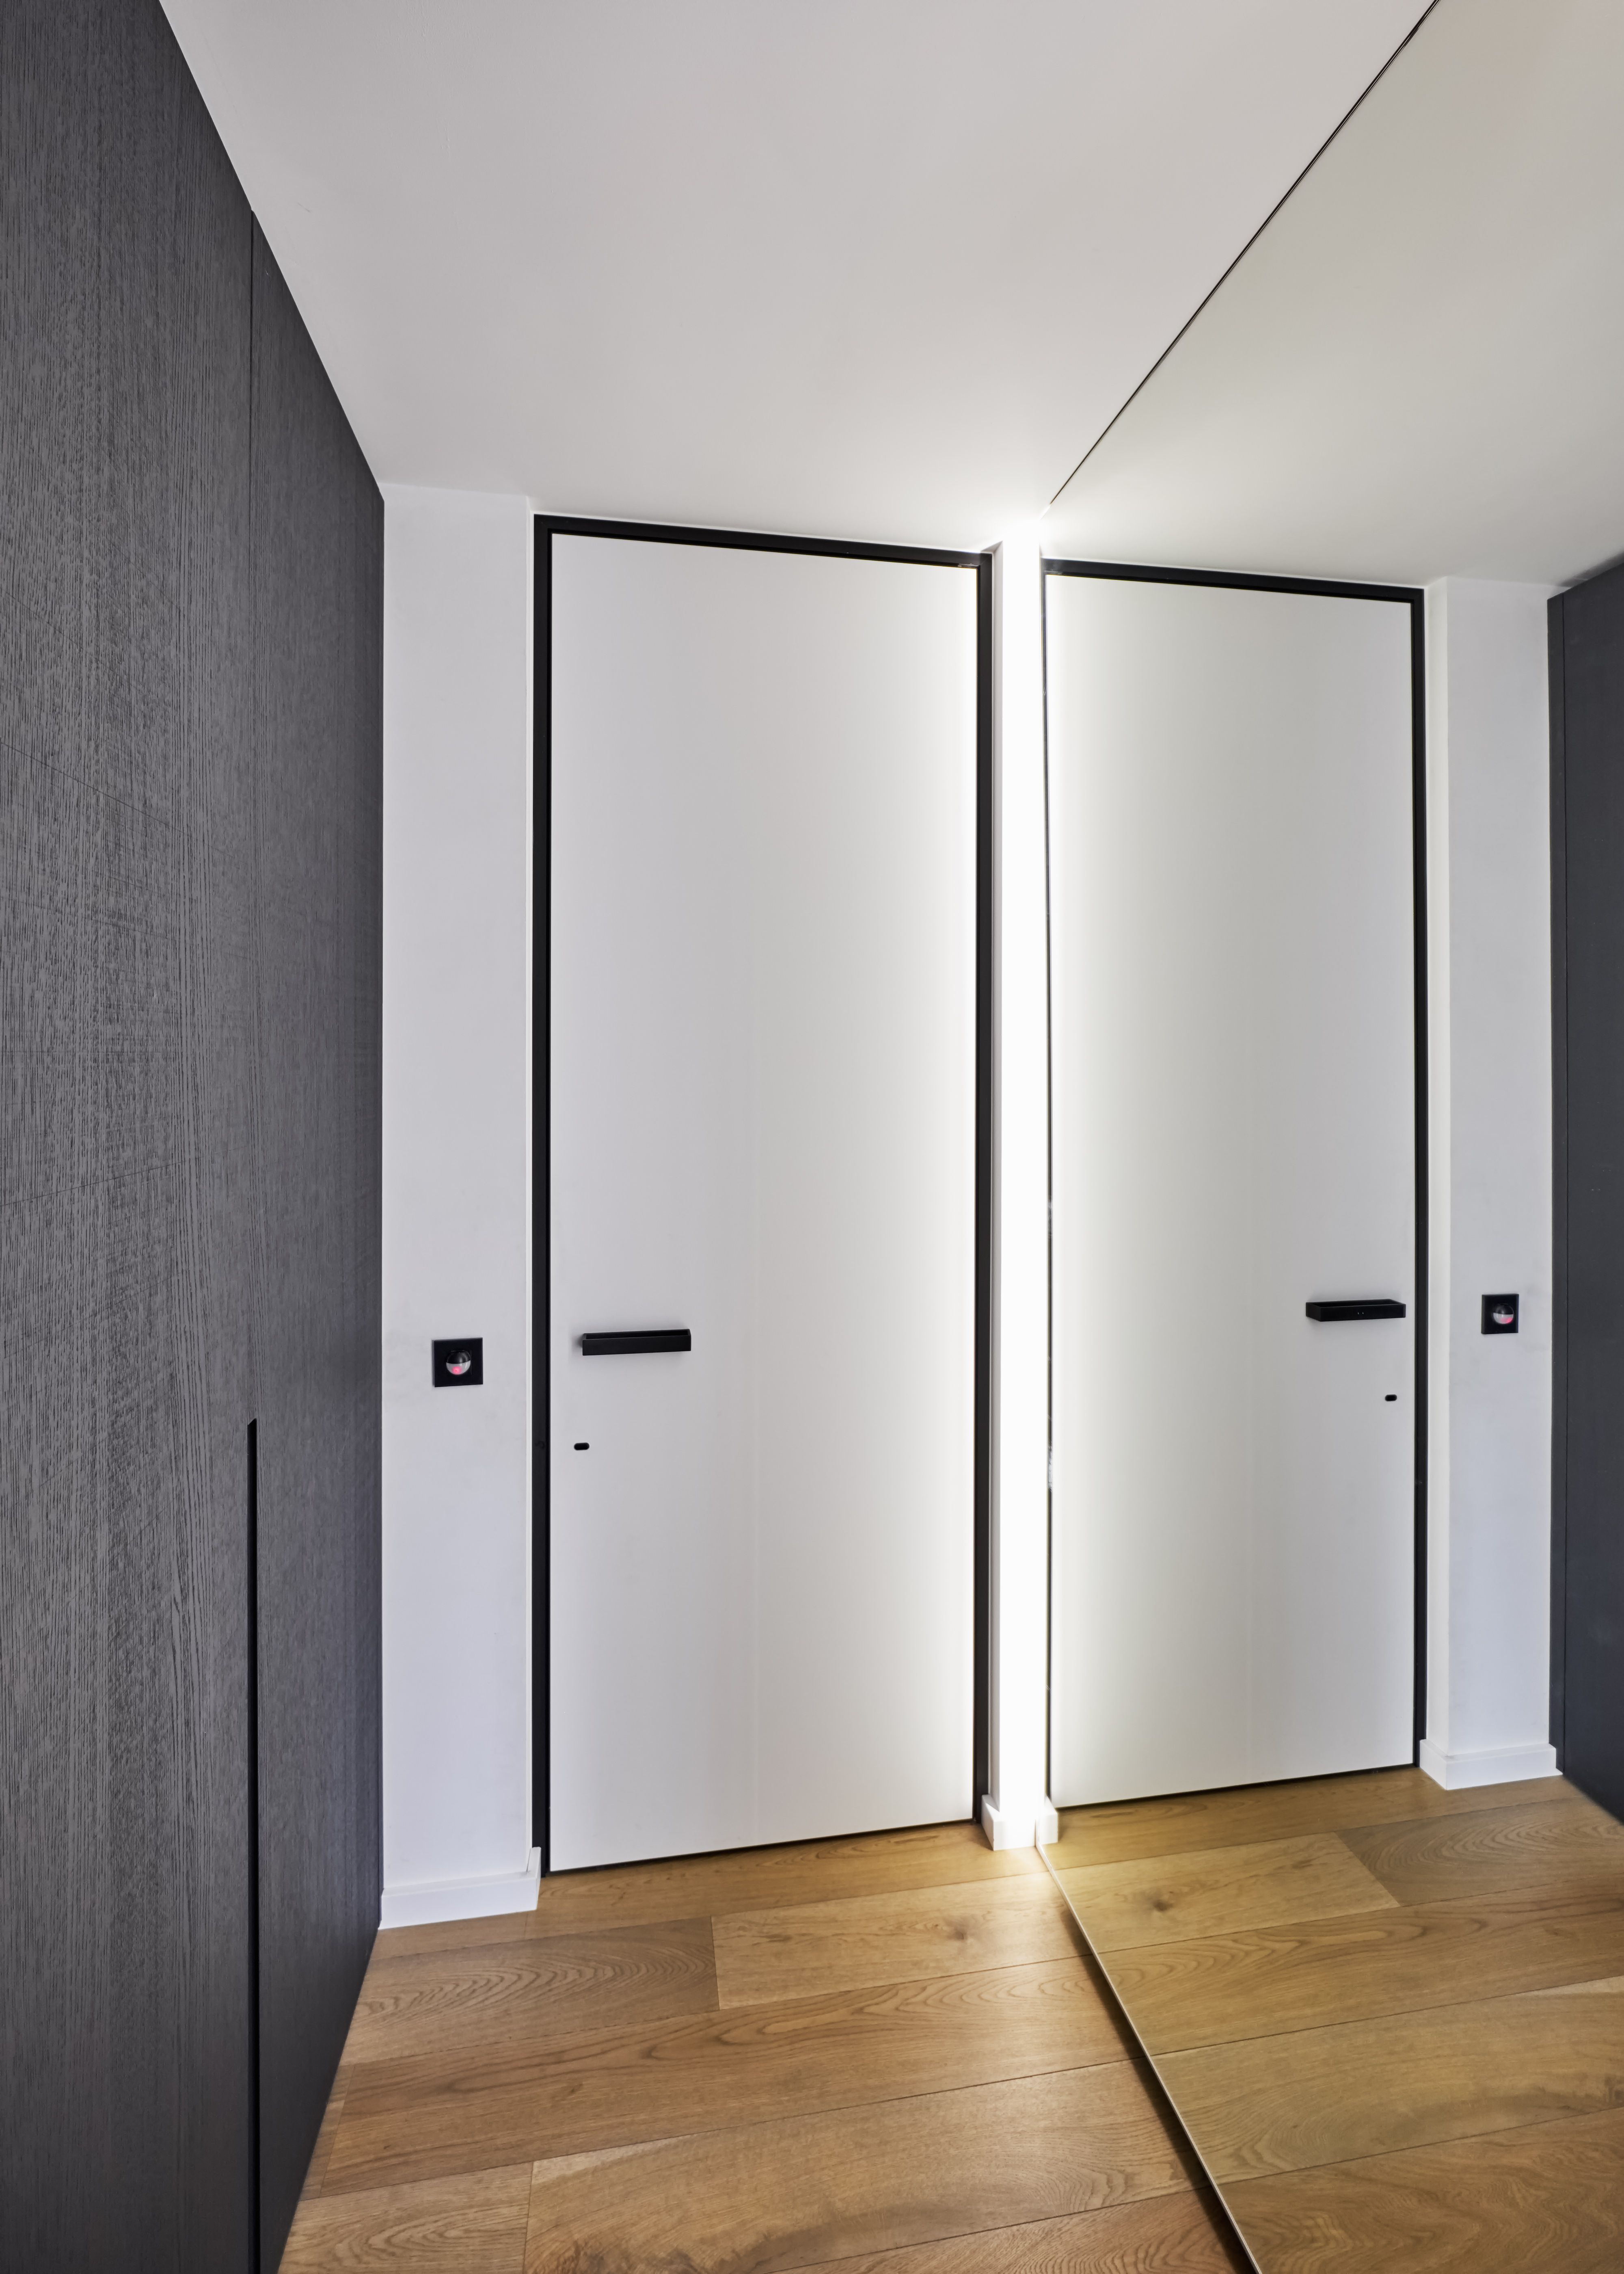 Modern White Interior Door With A Black Door Frame And